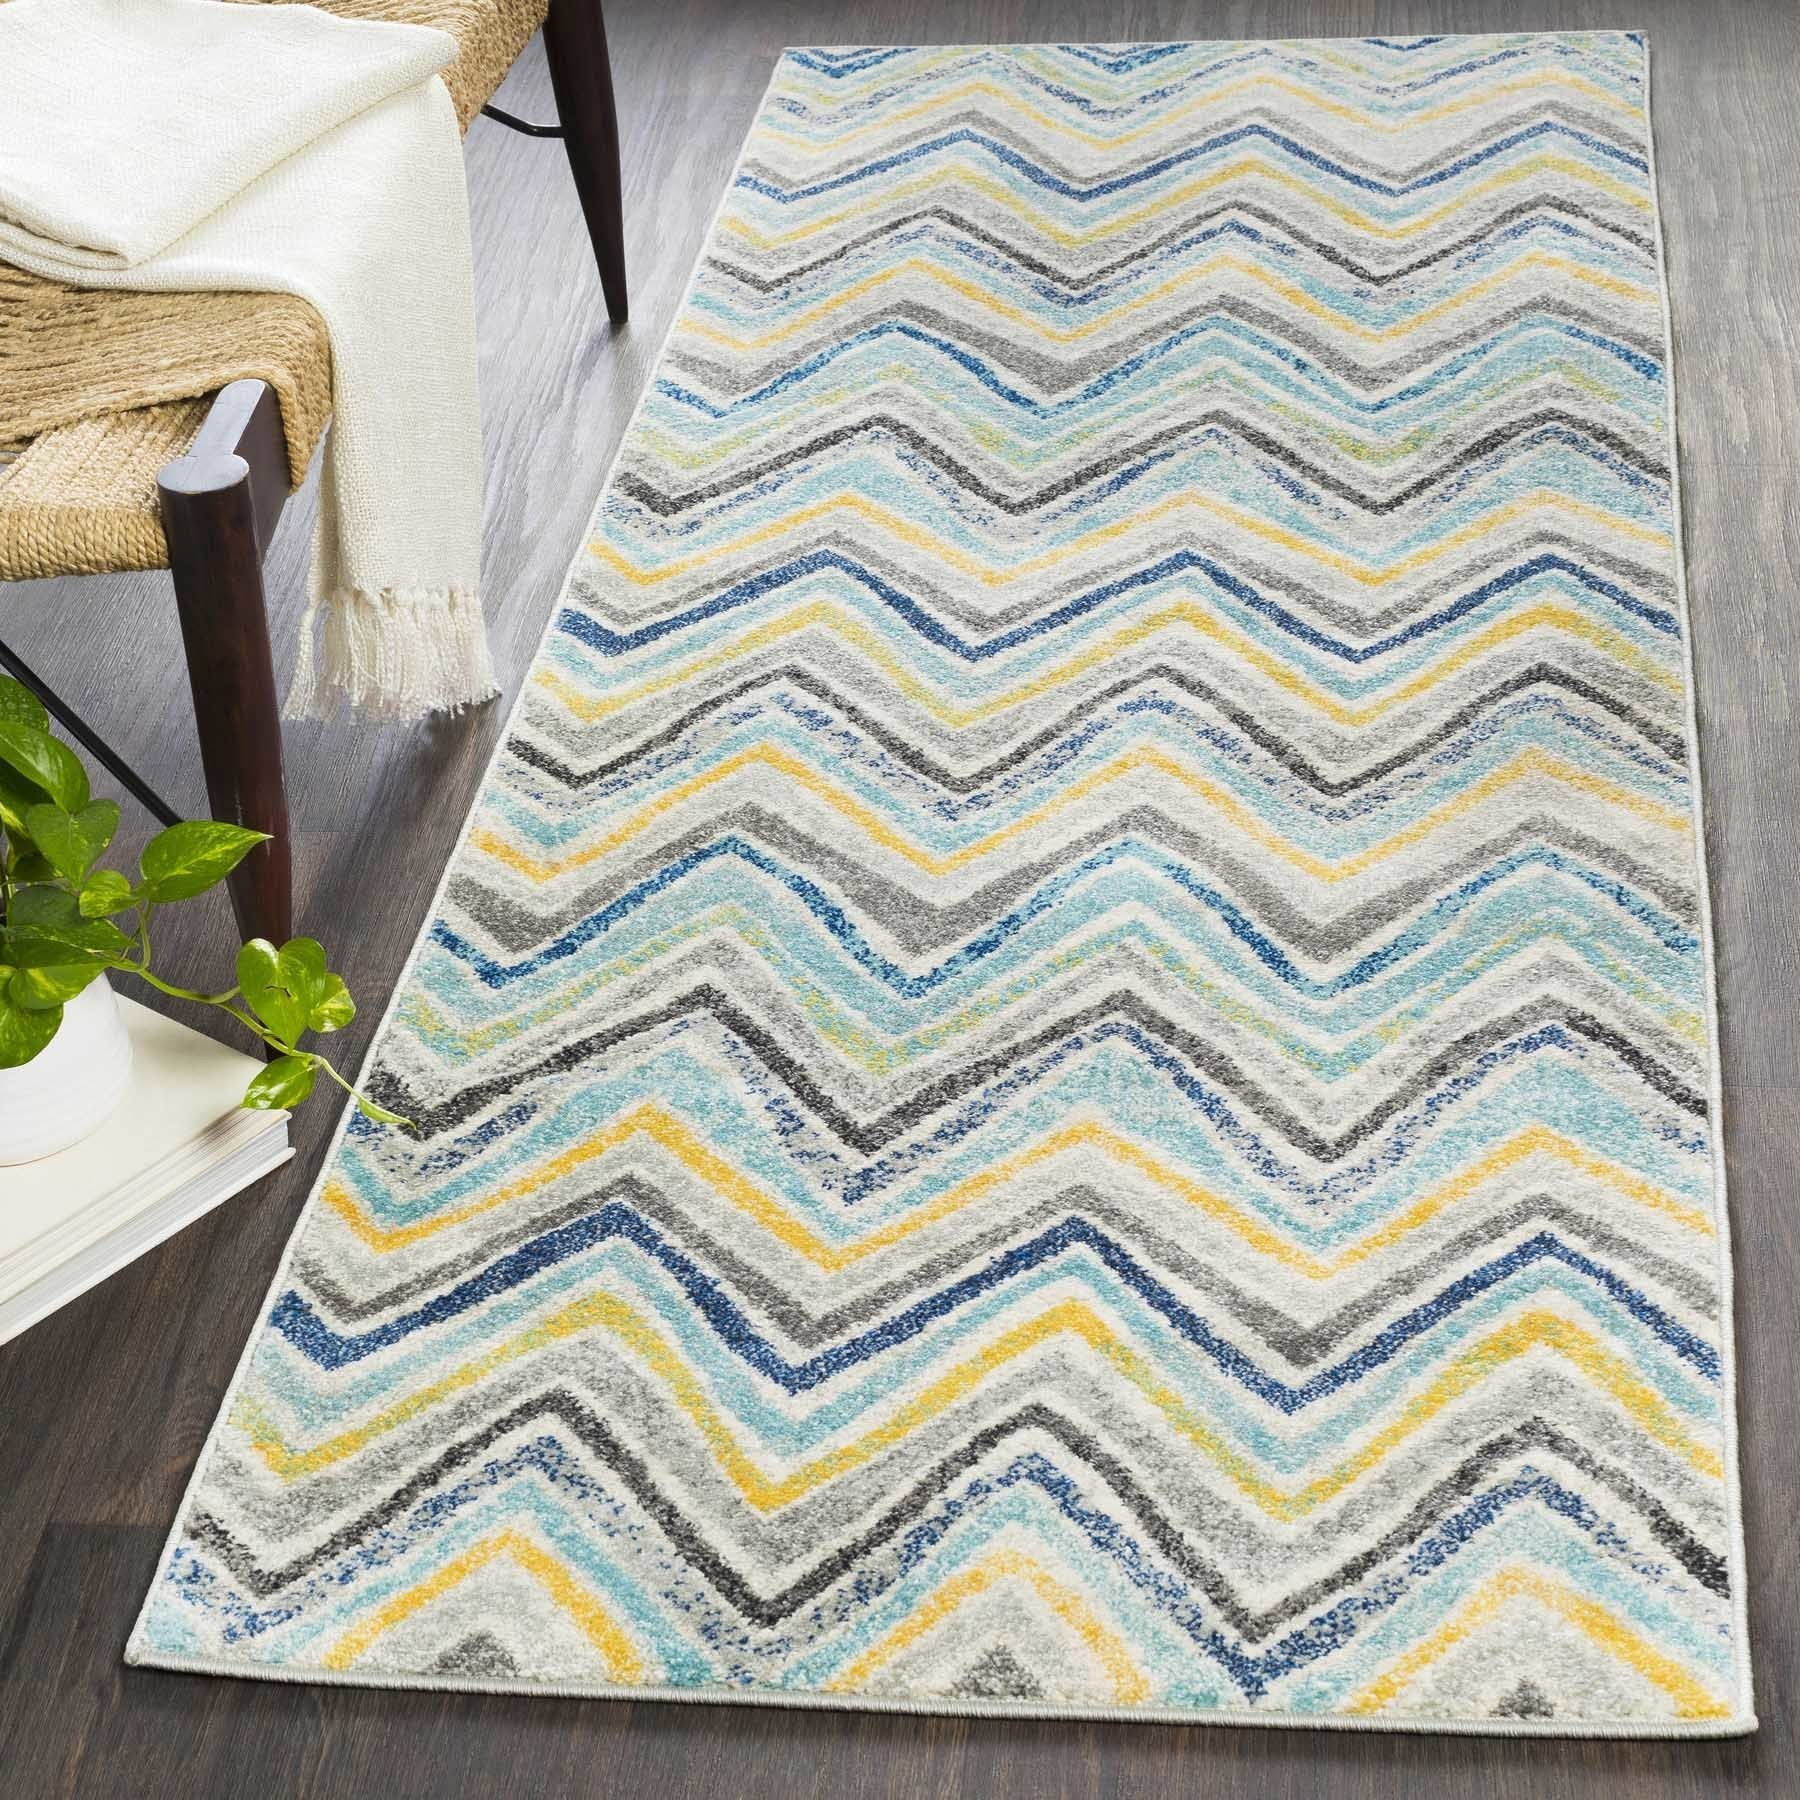 SURYA Aiden Blue & Grey Casual Chevron Rug (2'7 x 7'3) (G...